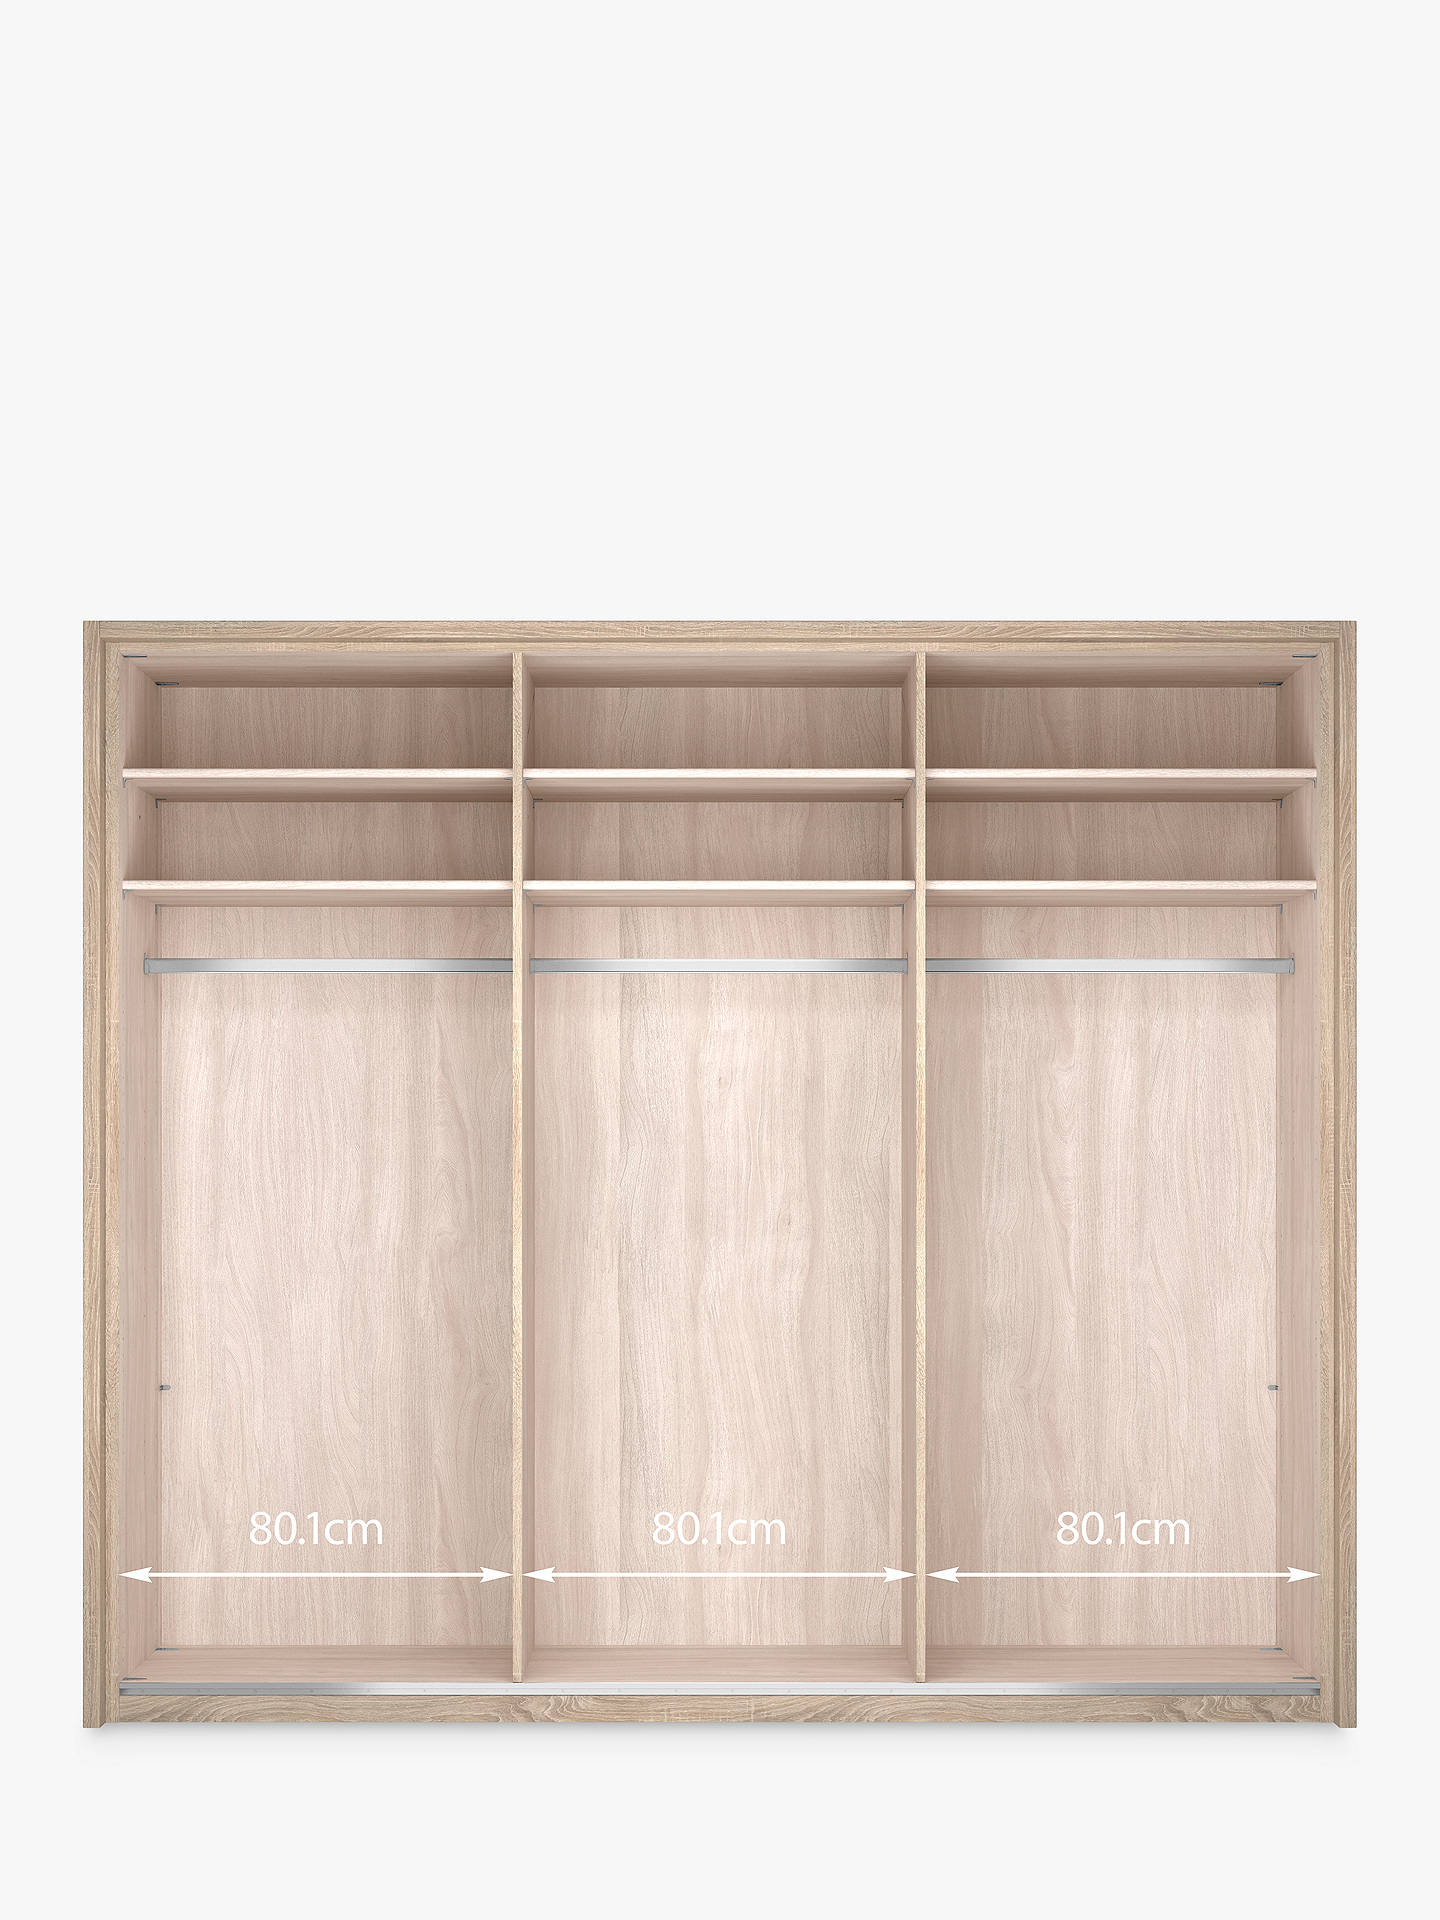 BuyJohn Lewis & Partners Treviso 250cm Wardrobe with Rustic Oak and Bronzed Mirrored Sliding Doors, Bronzed Mirrored Glass/Light Rustic Oak Online at johnlewis.com